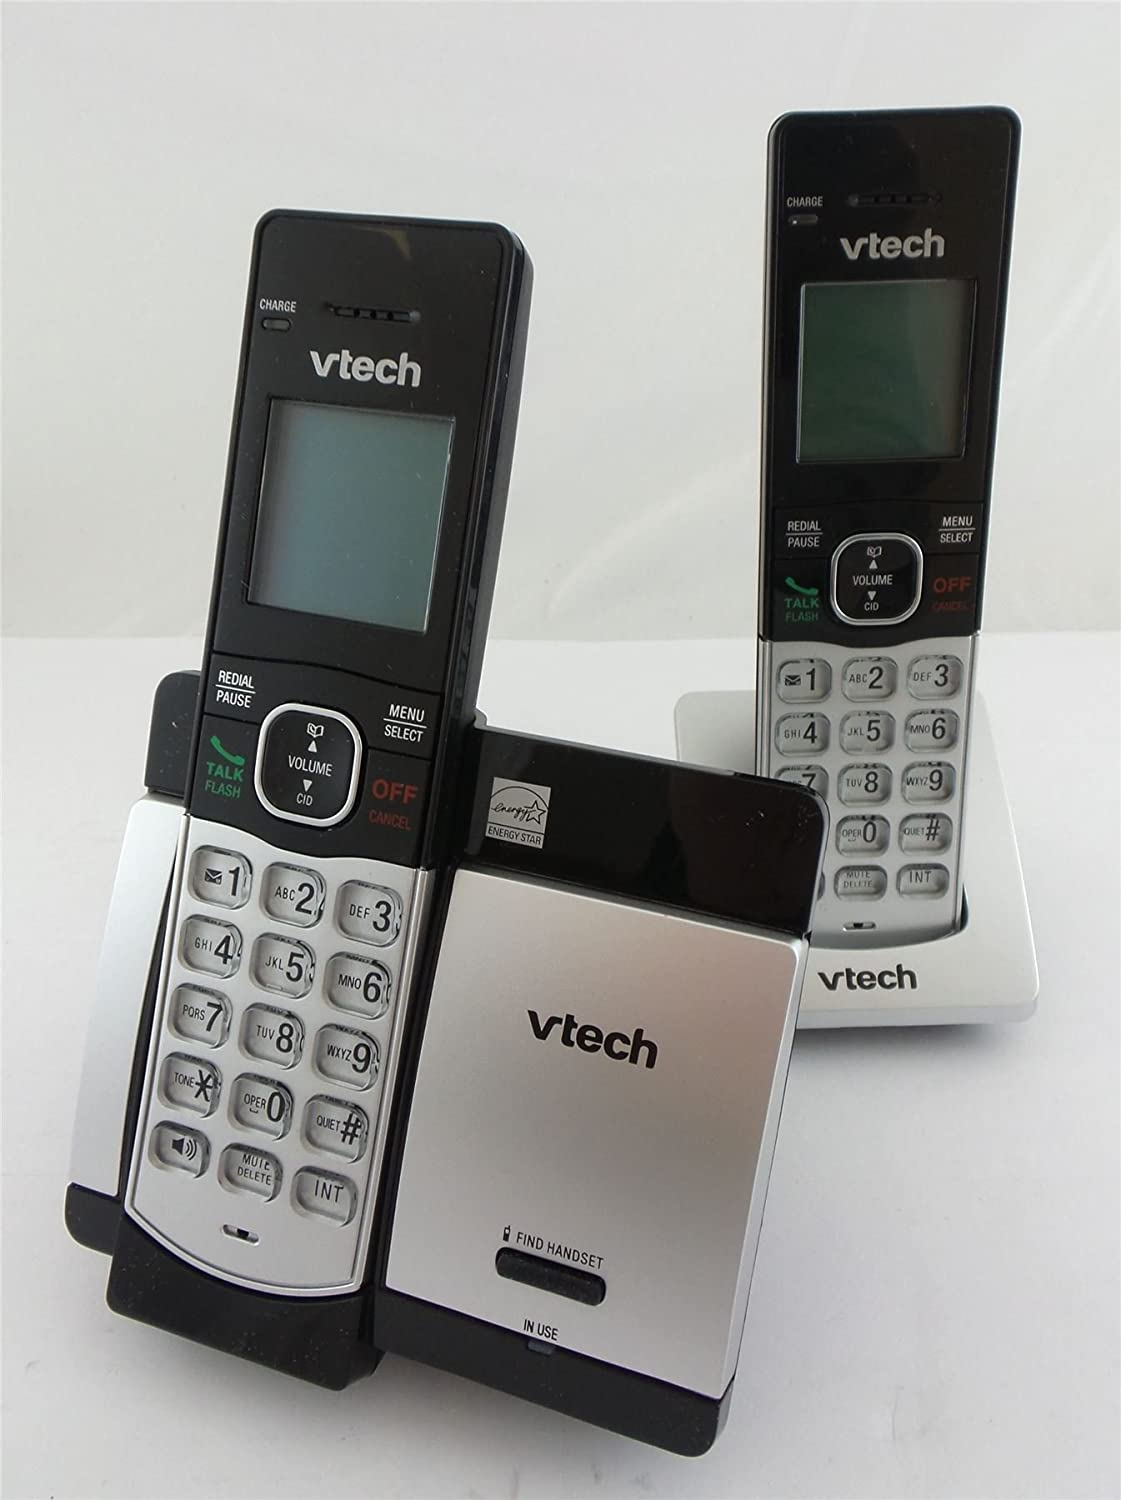 Amazon.com : VTech 2 Handset Cordless Phone System with Caller ID and Call Waiting CS5119-2 : Office Products